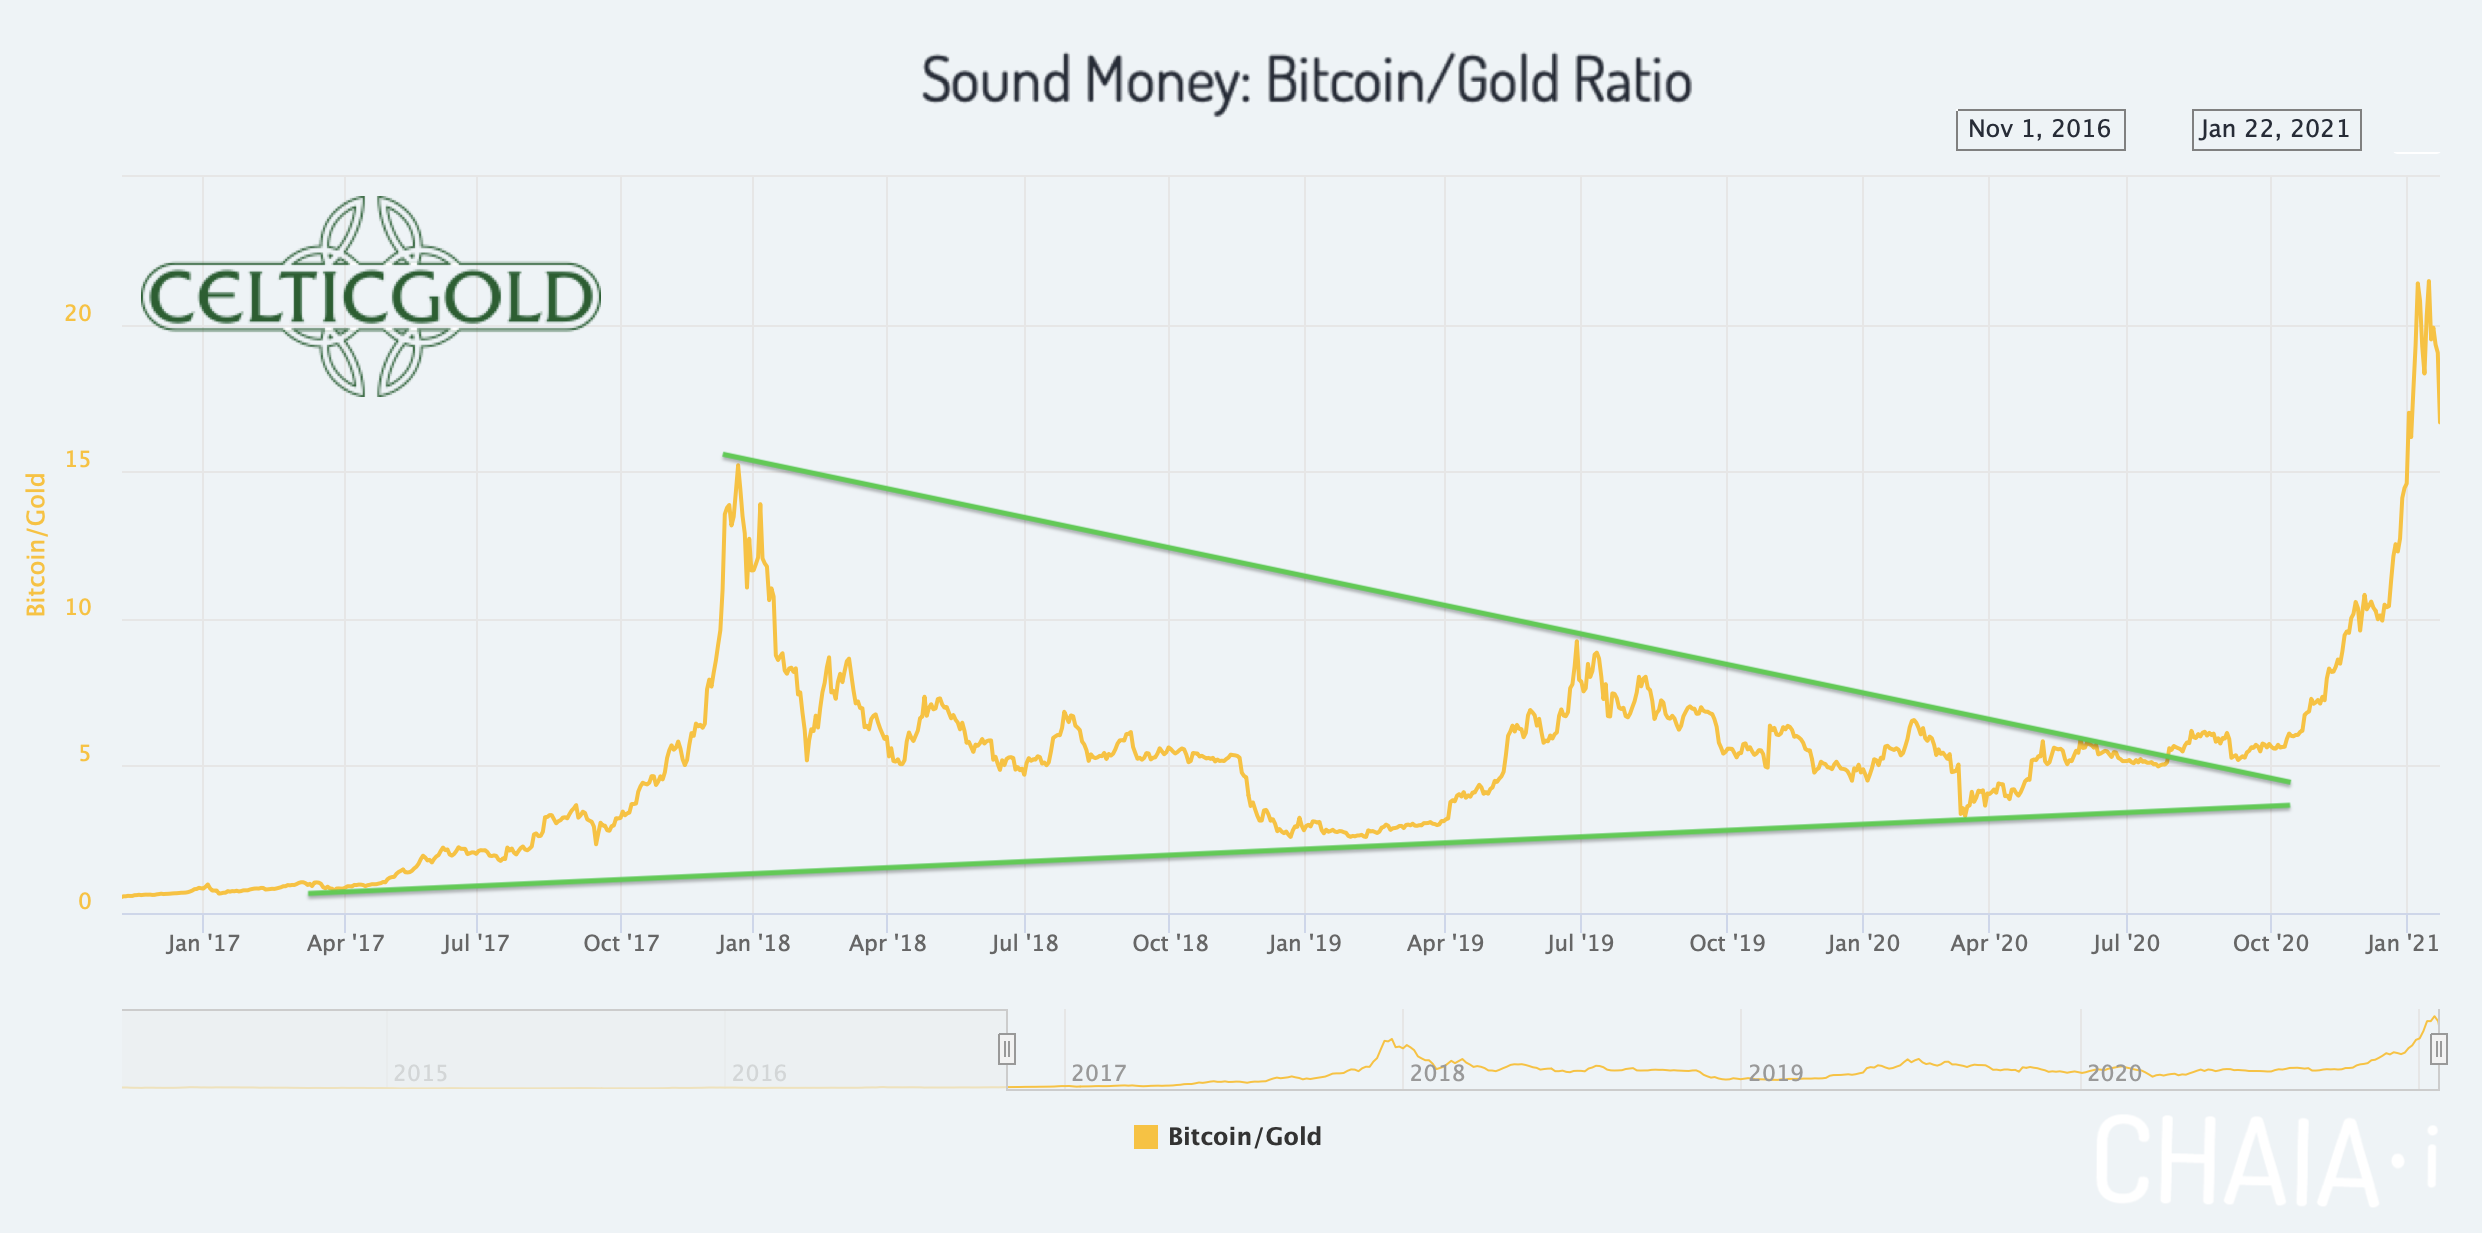 Sound Money Bitcoin/Gold-Ratio as of January 25th, 2021. Source: Chaia